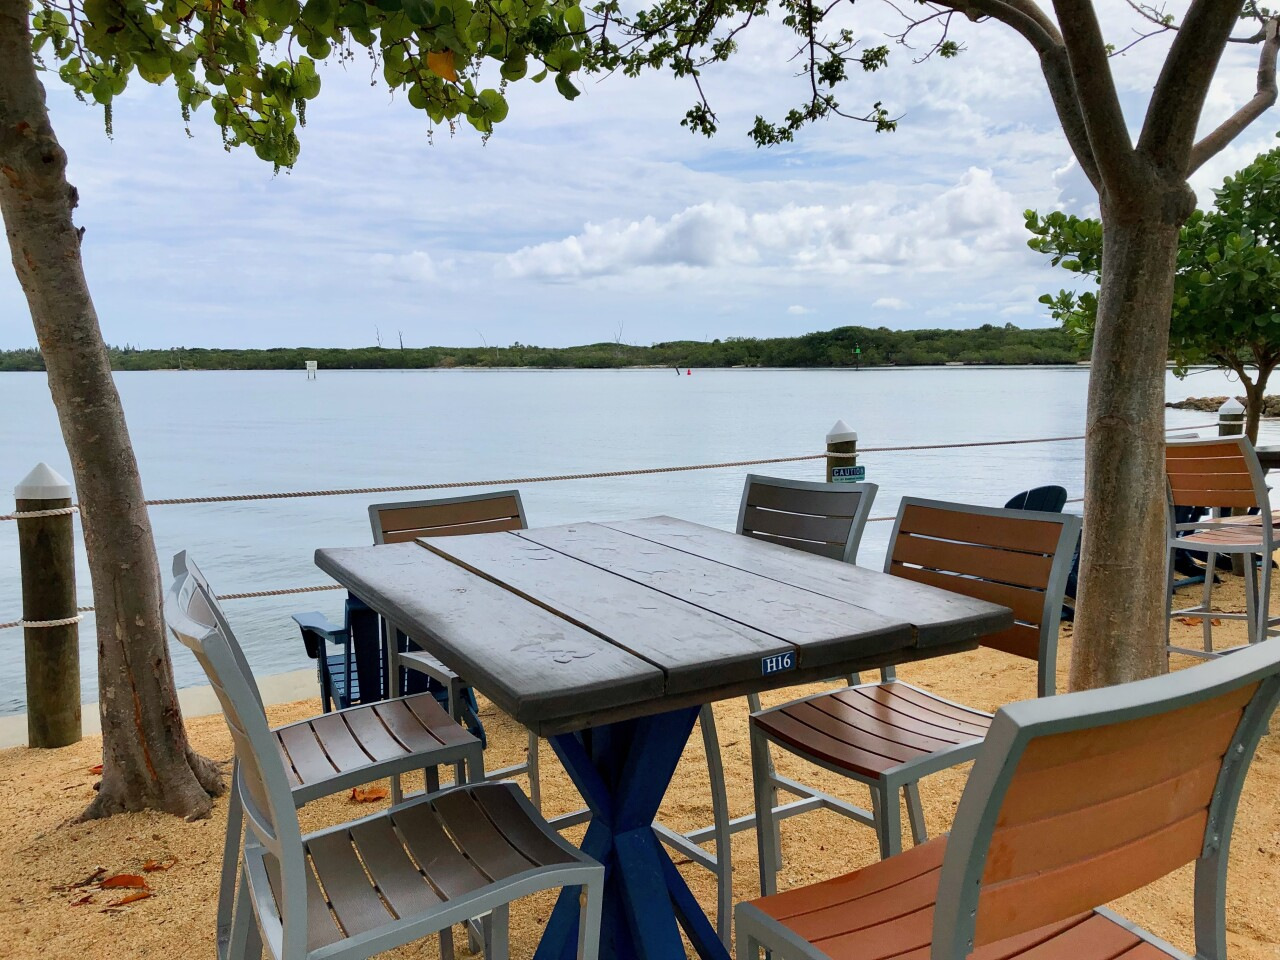 Outdoor dining at Blue Pointe Bar and Grill